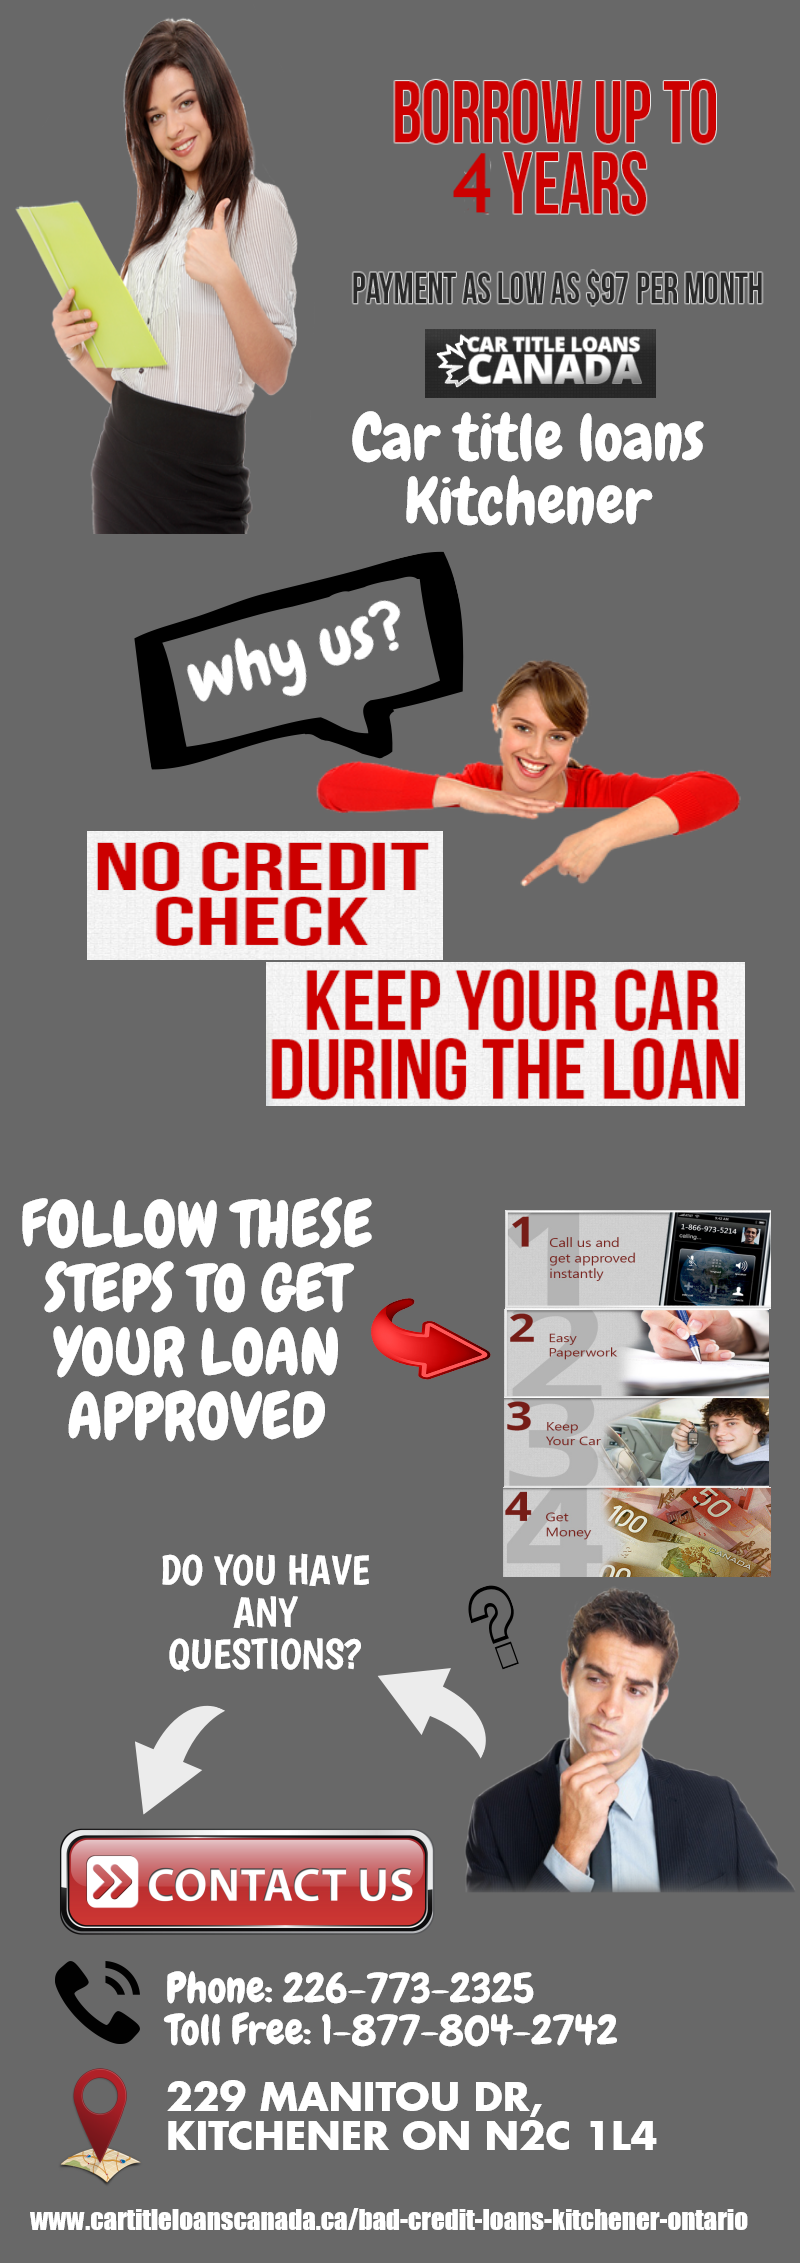 Apply For A Loan With Car Title Loans Kitchener. It Doesn\'t Matter ...